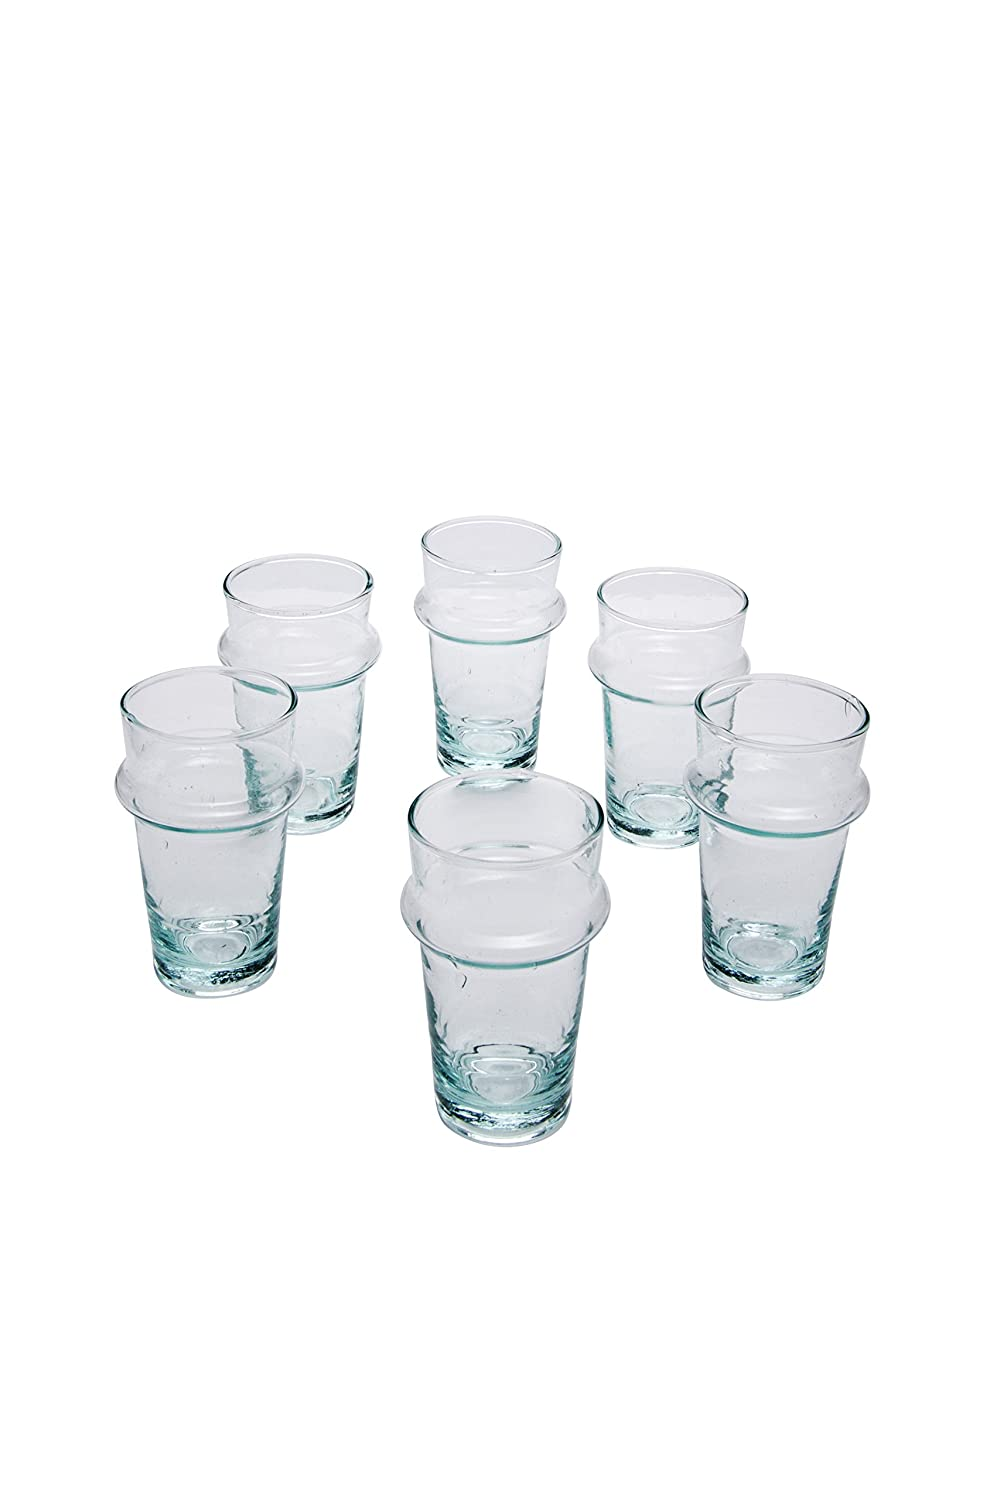 Set of 6 Moroccan Tea Glasses Hayat Transparent Clear Colors | Turkish Glass as Tealight Holders in Oriental Decor | Ornate Cups in Morocco Style as Home or Kitchen Decorations | Different Patterns